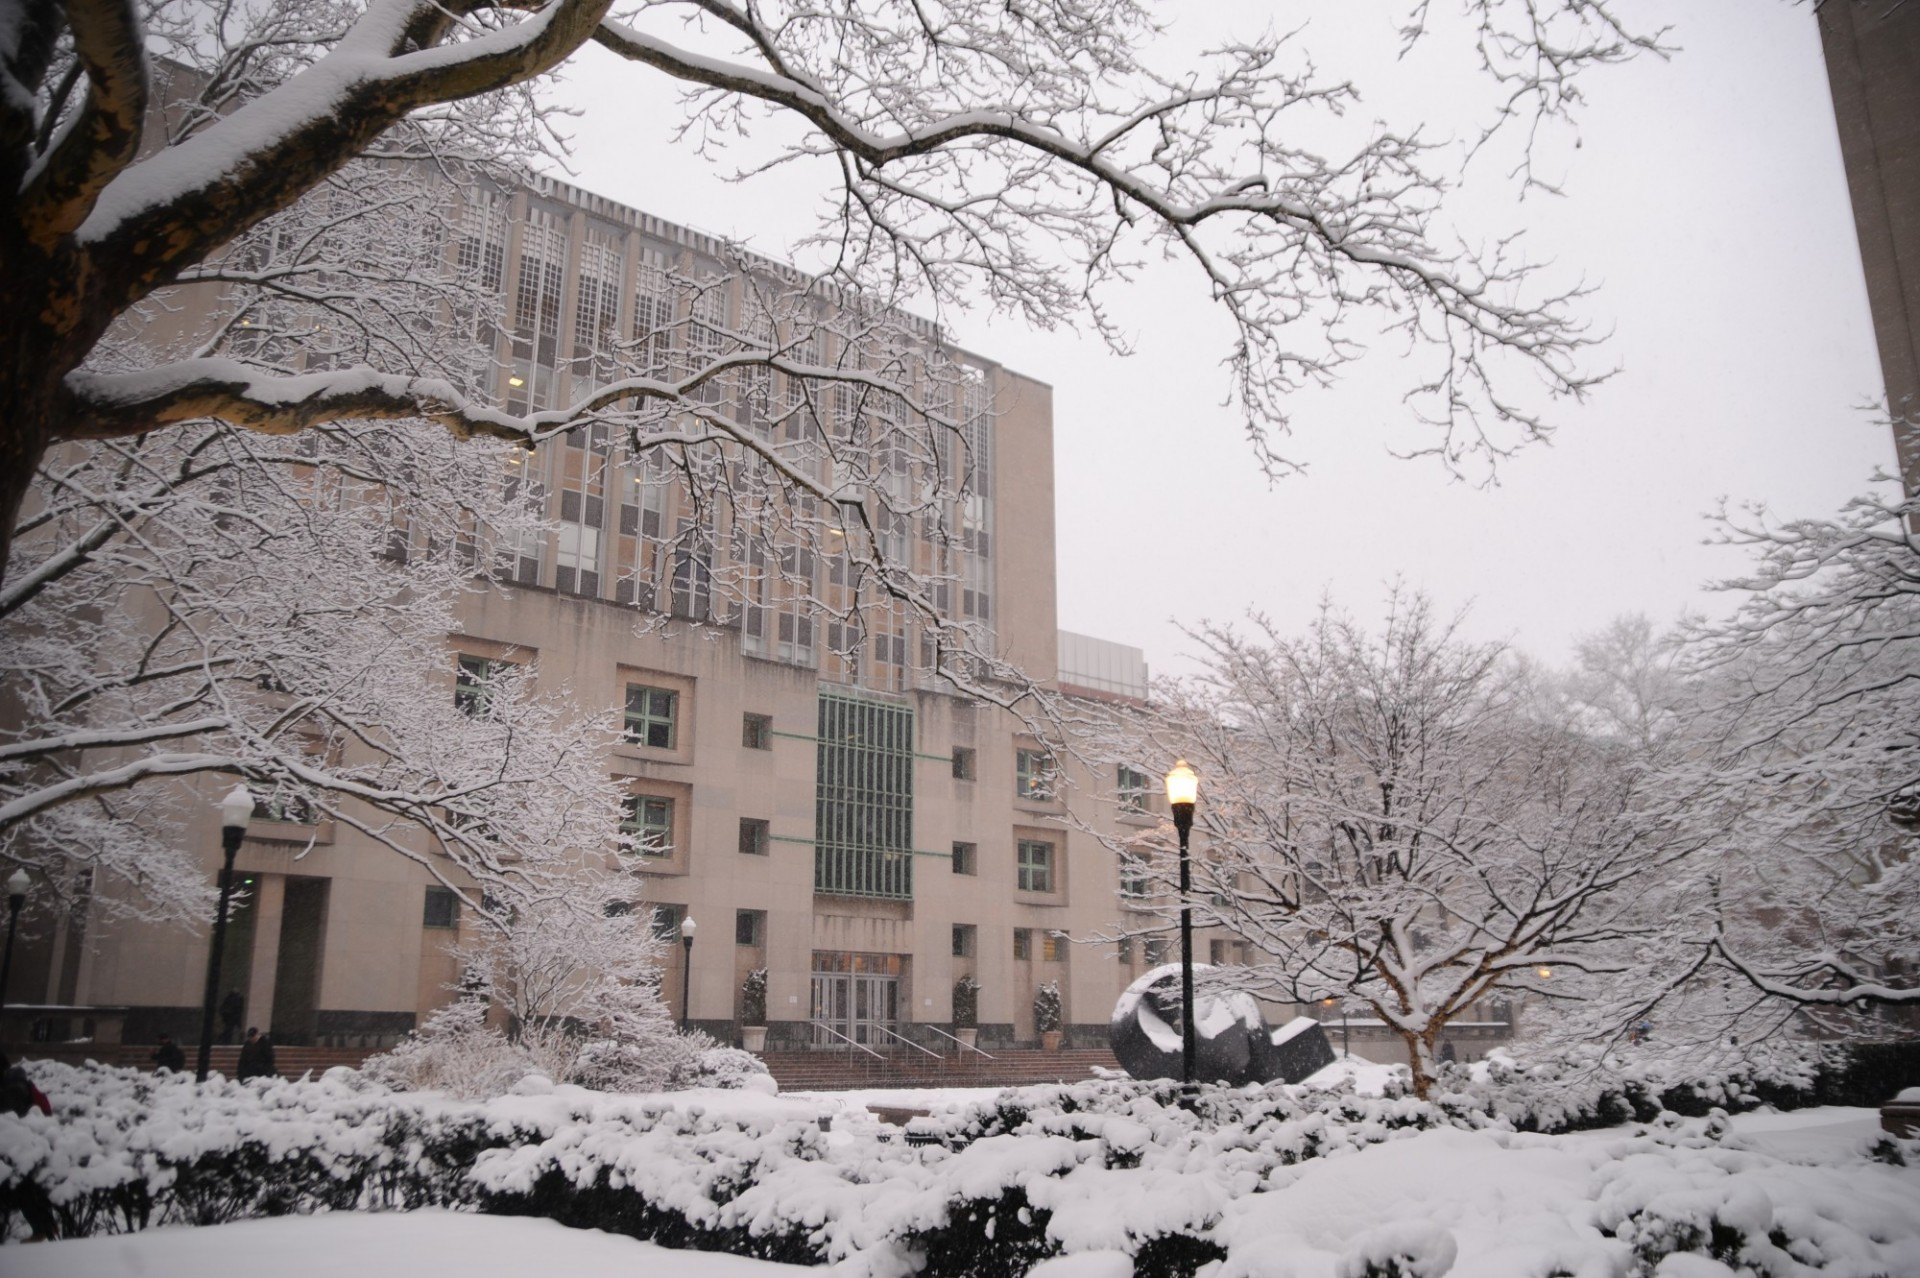 Uris Hall during the winter, surrounded by snow.